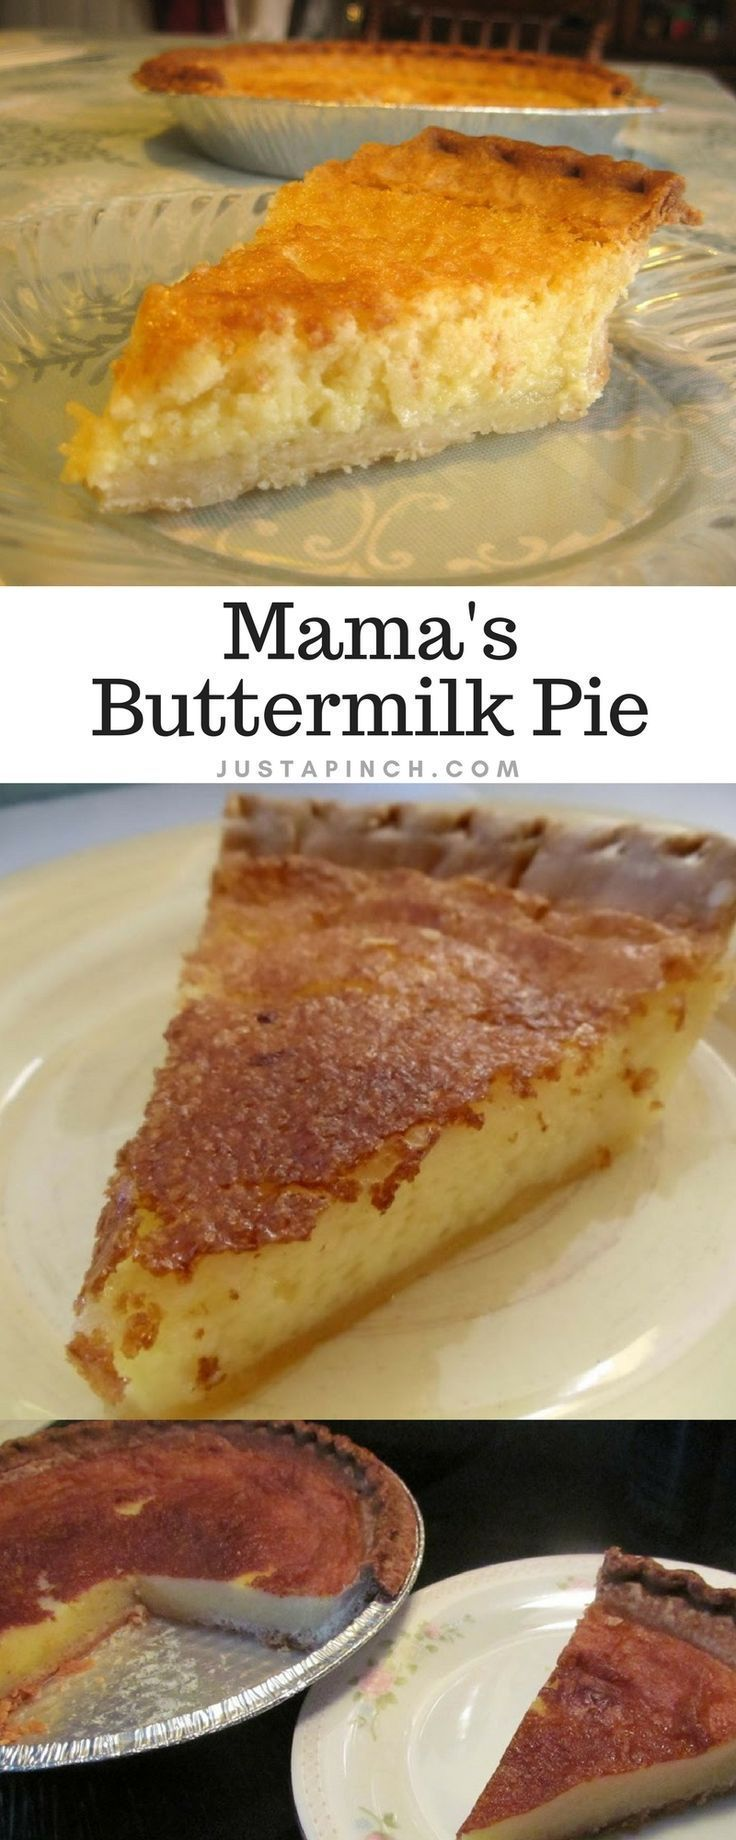 Mama S Buttermilk Pie Recipe Buttermilk Recipes Buttermilk Pie Recipe Homemade Buttermilk